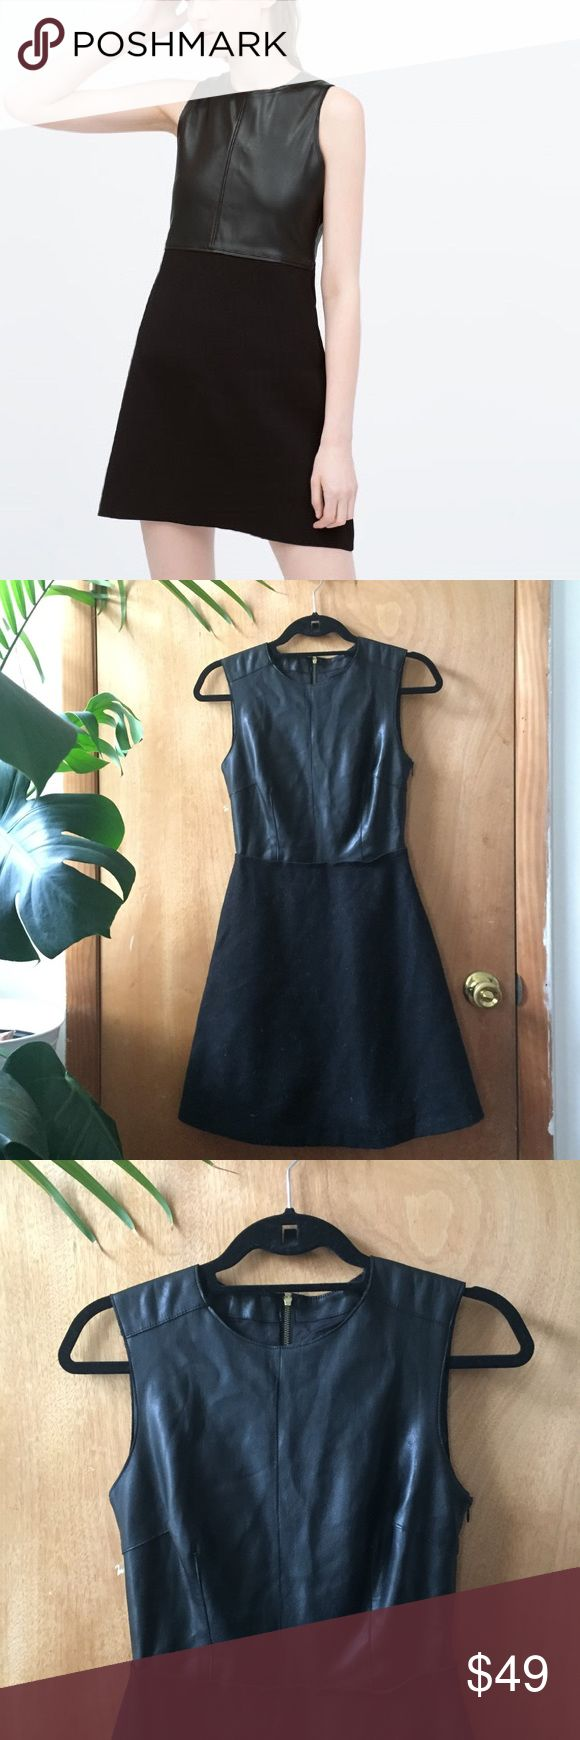 Zara leather and wool dress - XS Zara faux leather top with invisible side zipper and gold back zipper, wool flared skirt. Worn once. Size XS. Zara Dresses